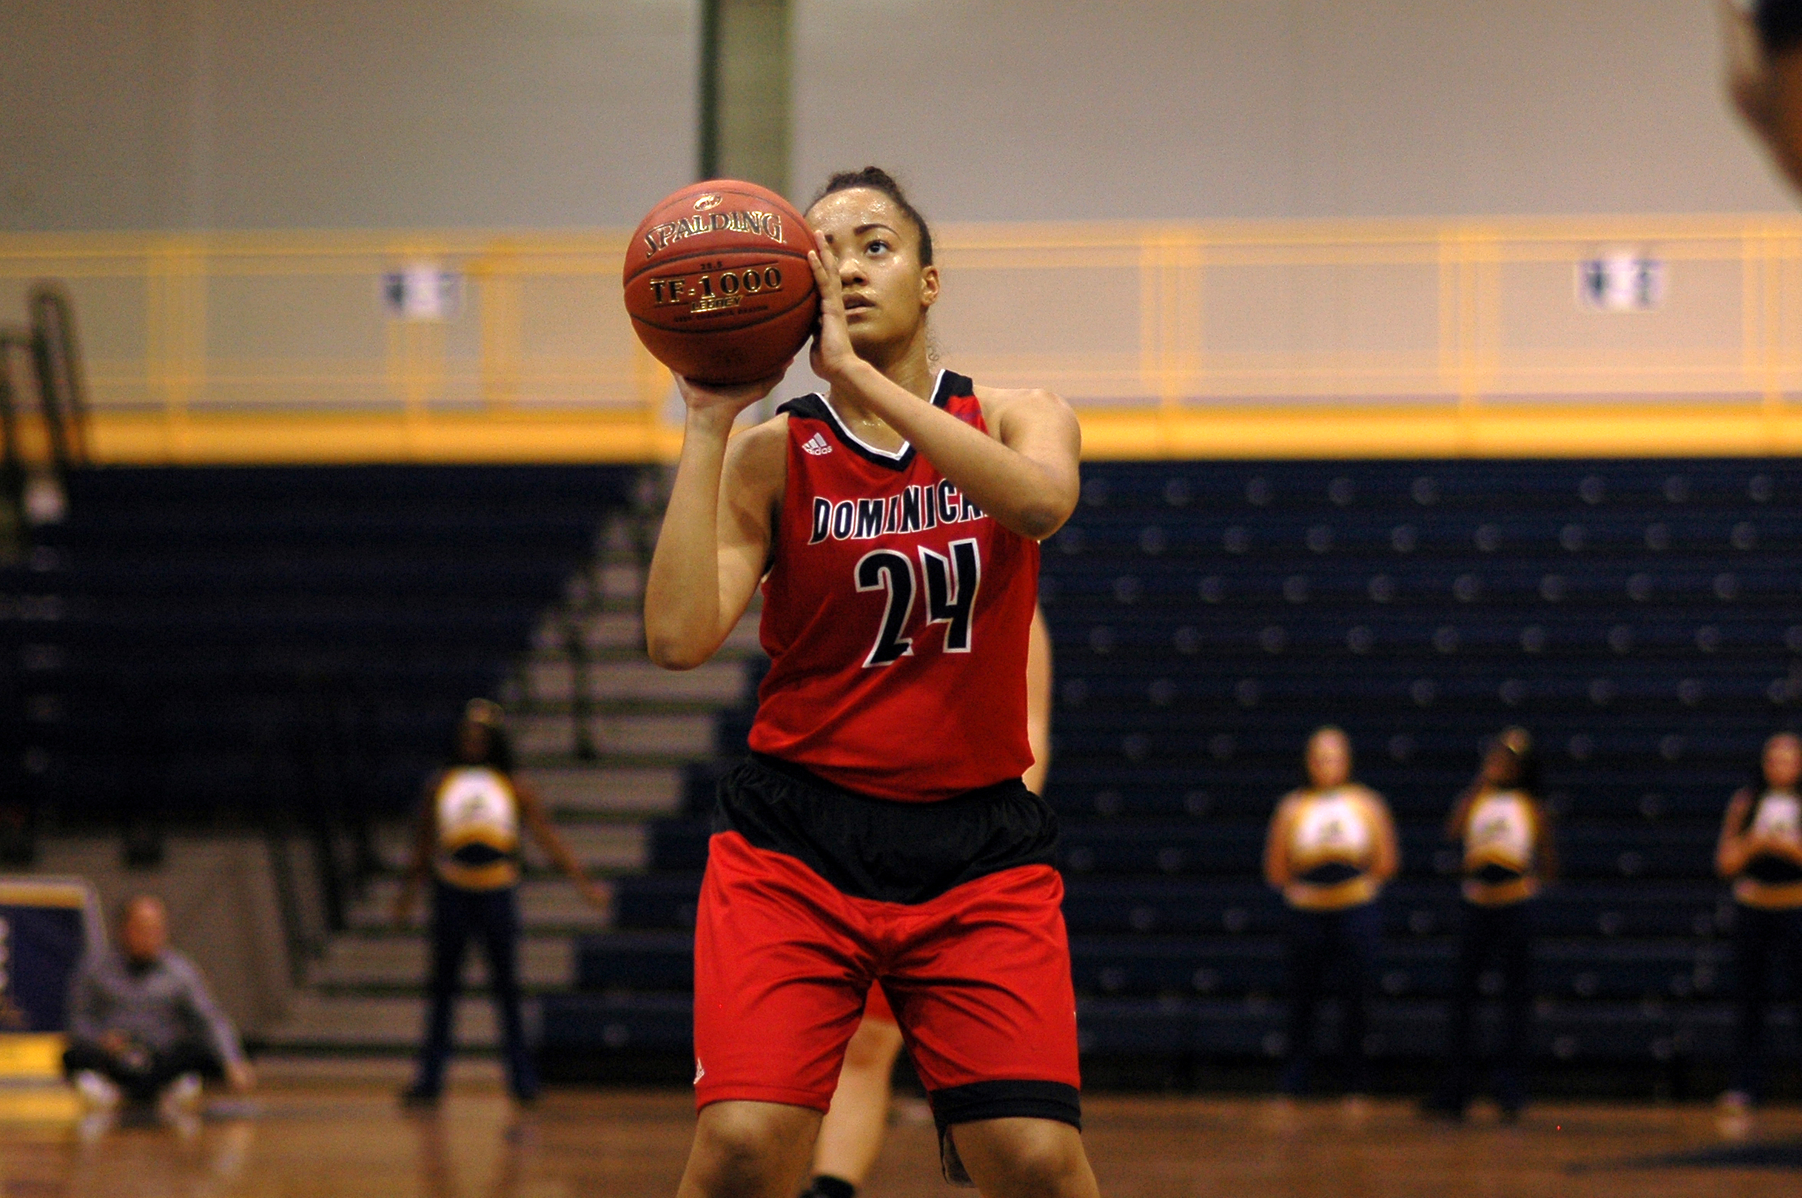 LADY CHARGERS FALL SHORT IN COMEBACK EFFORT VERSUS MERCY COLLEGE